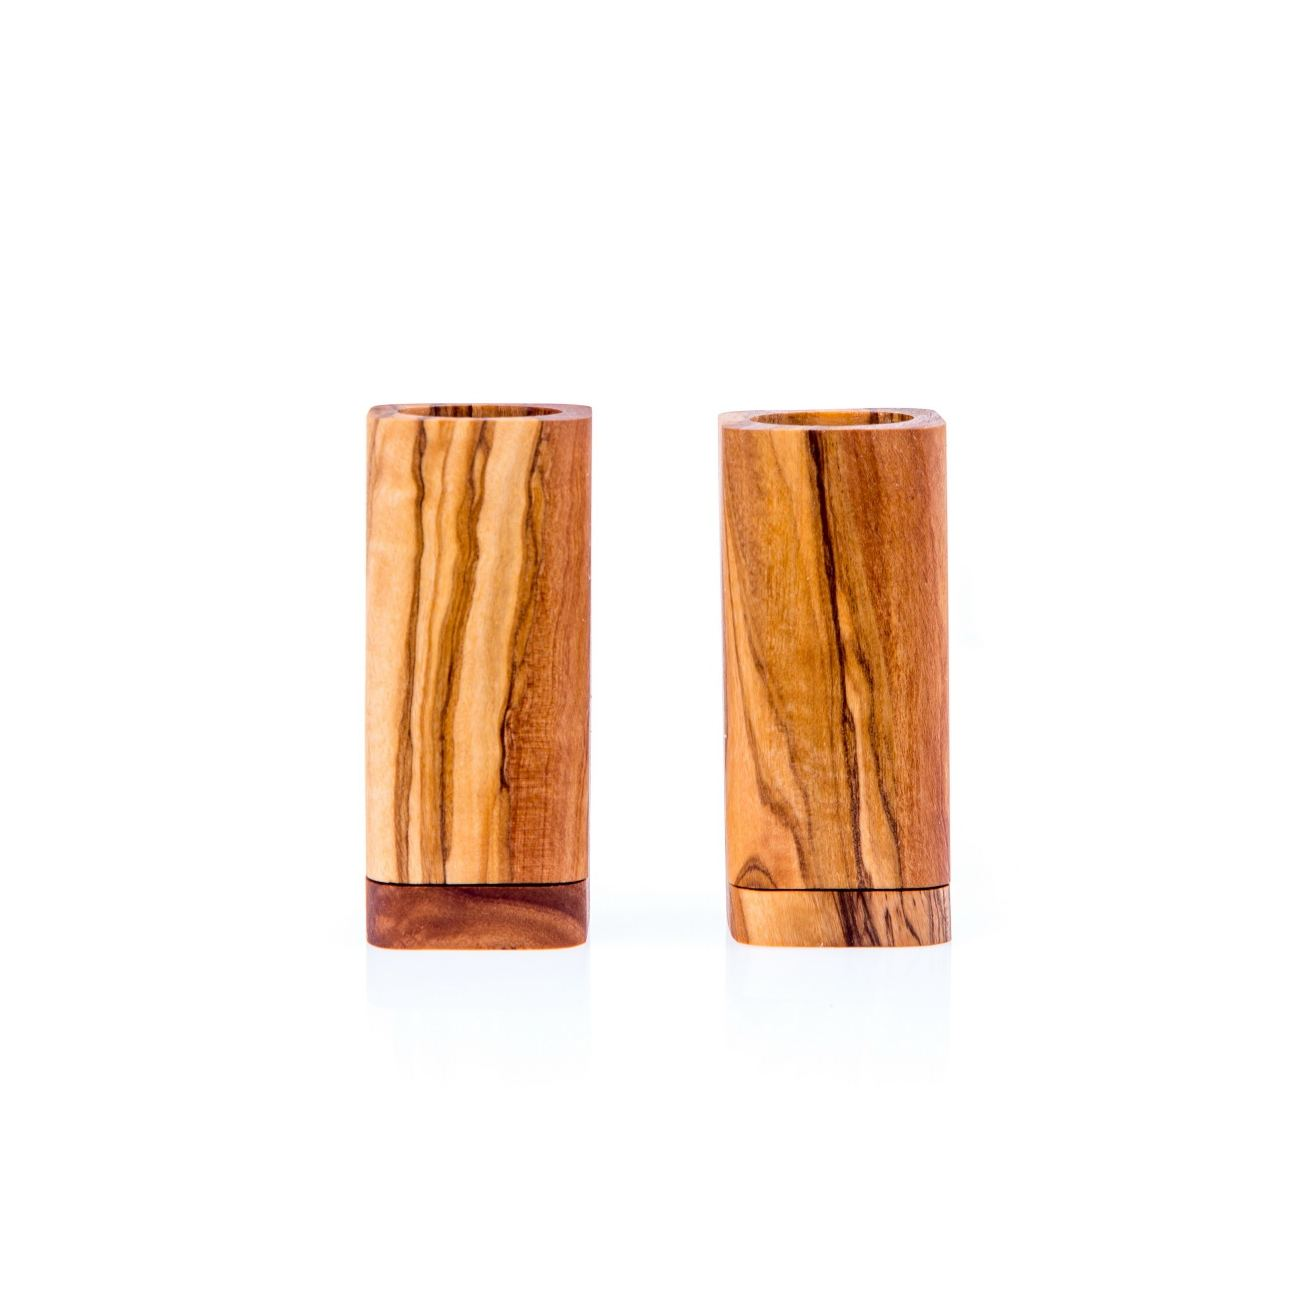 753e4087e1 Olive Wood Salt   Pepper Shakers Set of 2 - Kitchen Accessories